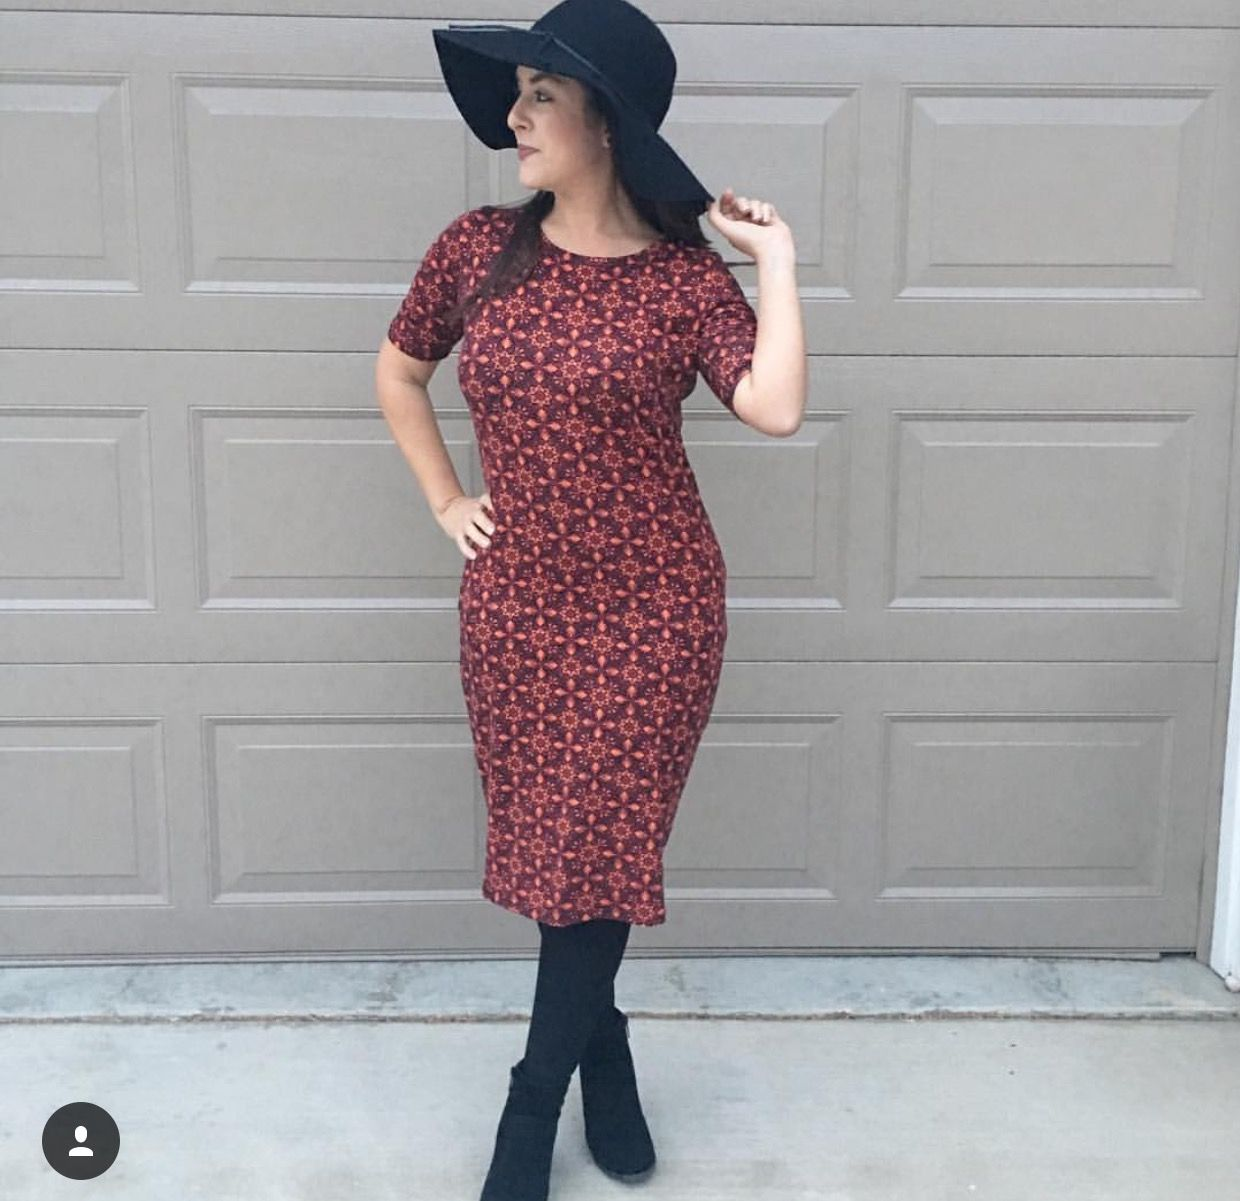 LuLaRoe fashion is comfortable, versatile, and chic. Julia dress.  Styling by LuLaRoe Pris and Julie.